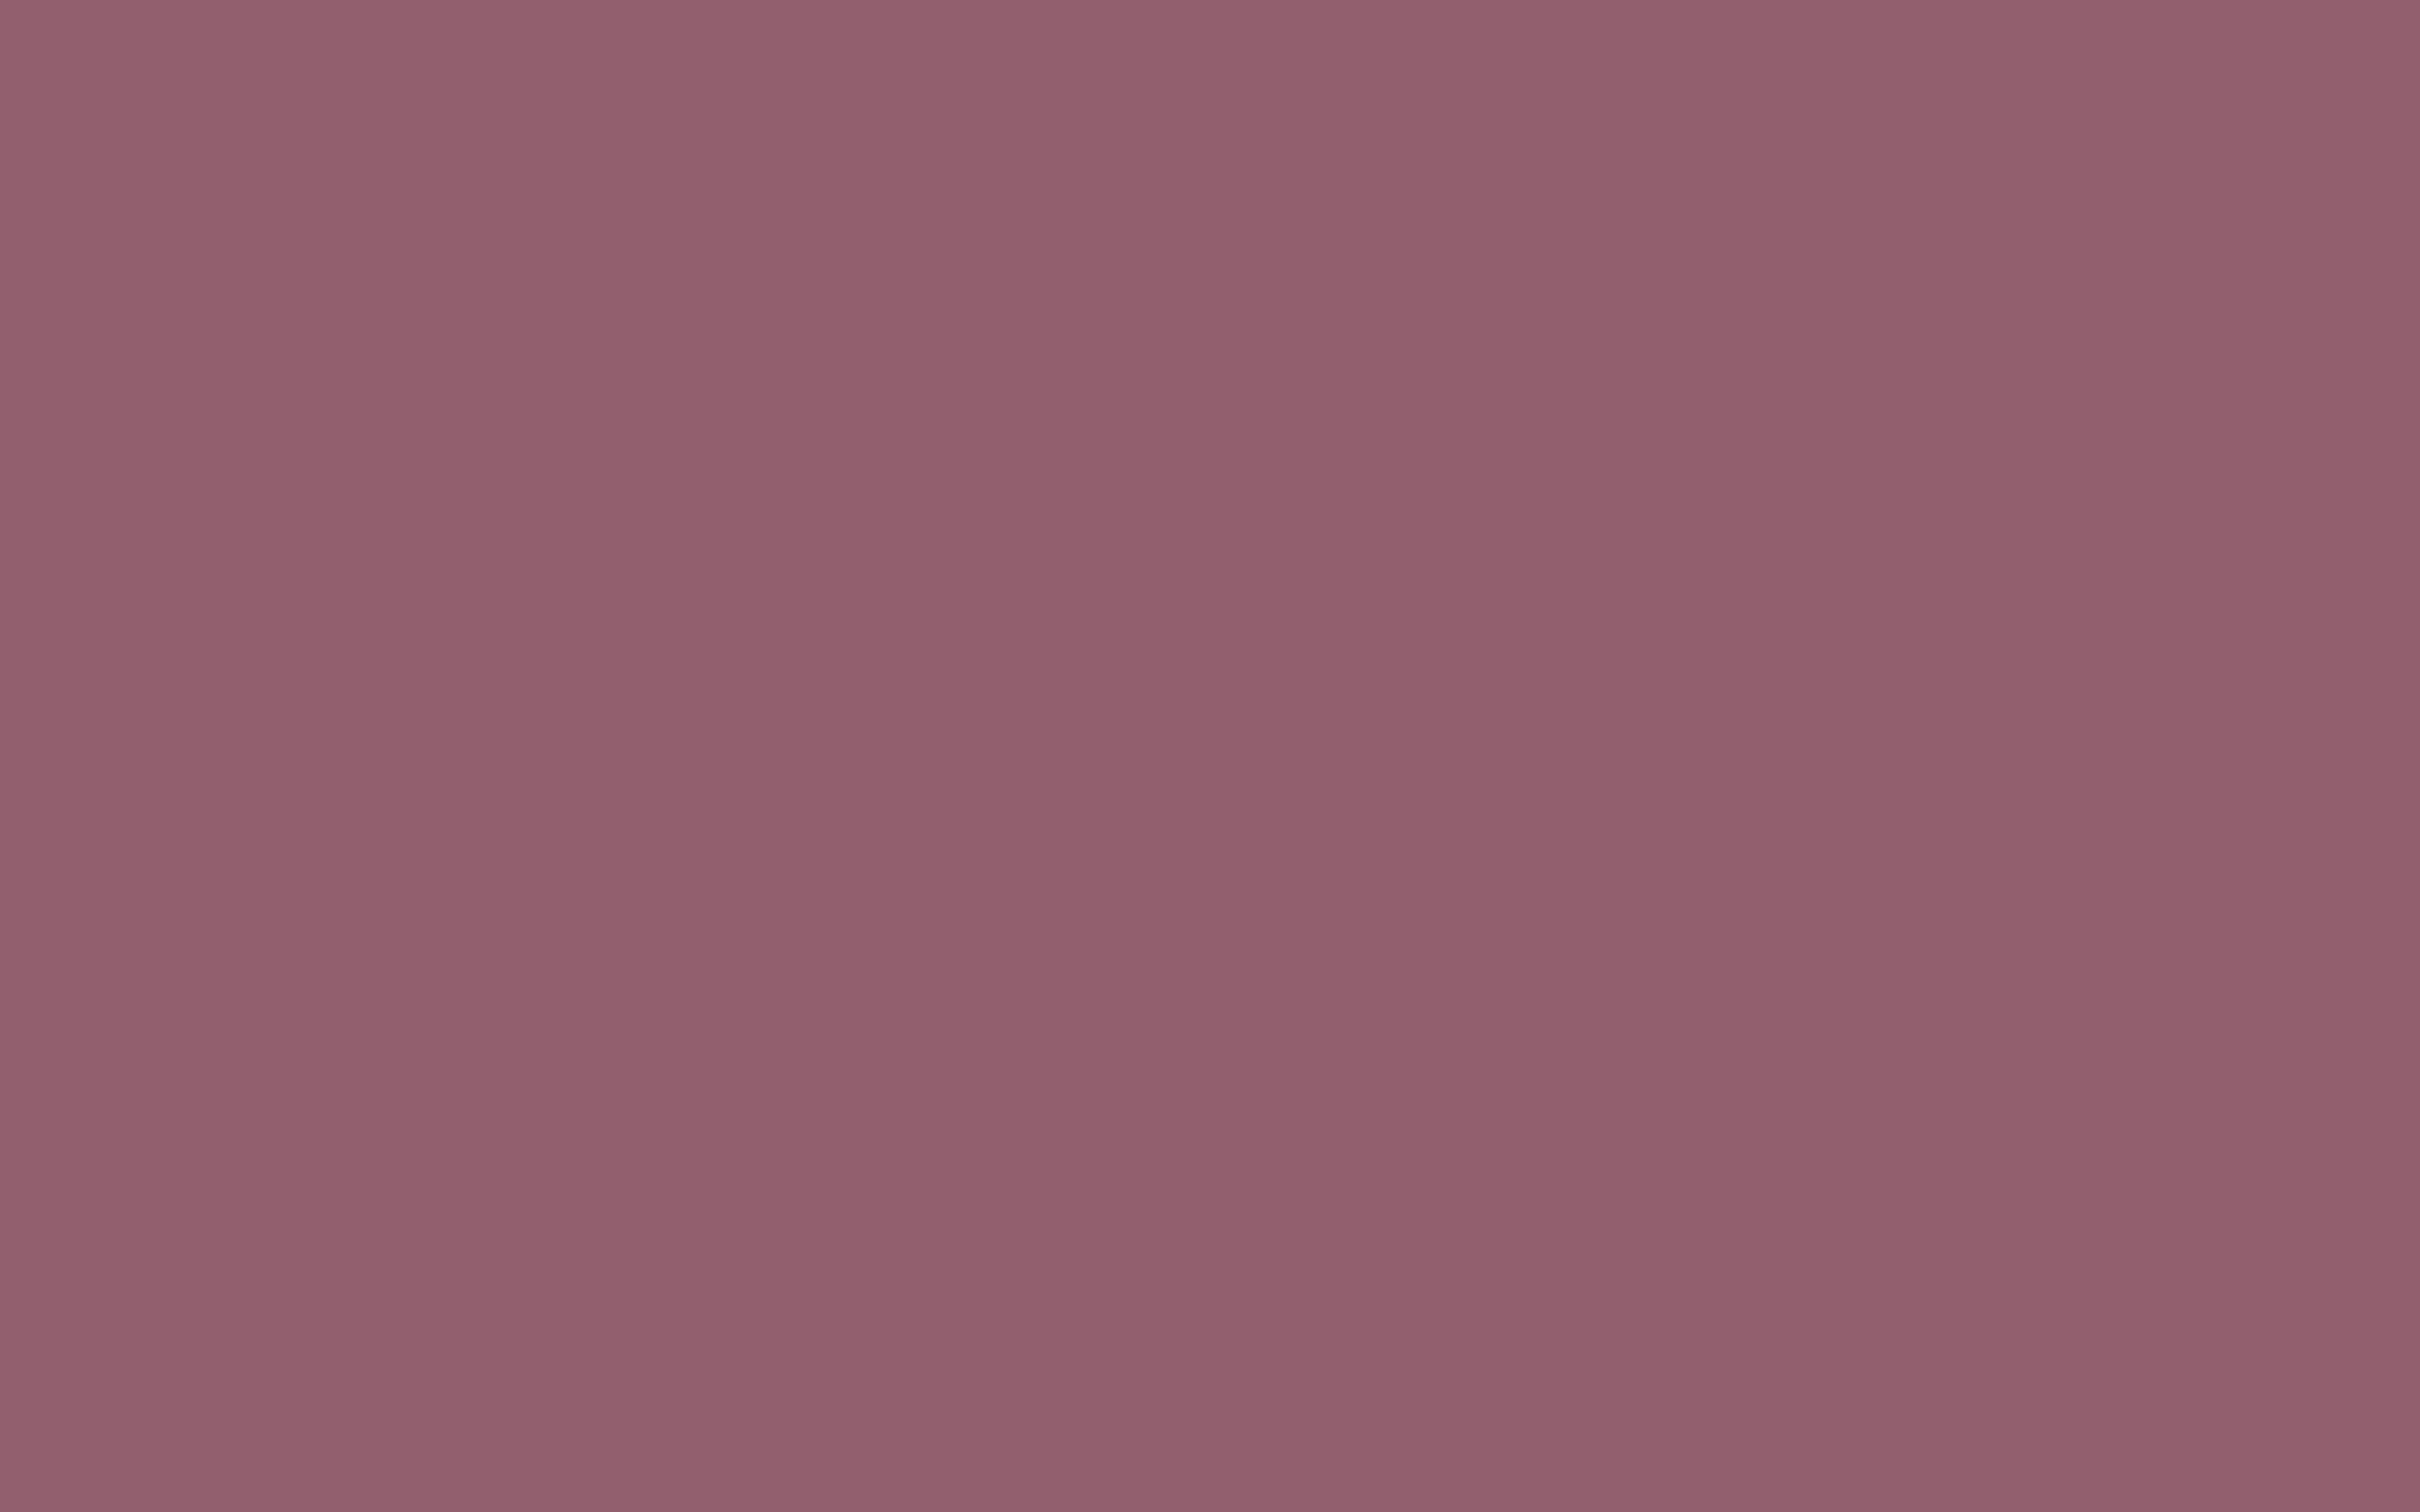 2880x1800 Raspberry Glace Solid Color Background